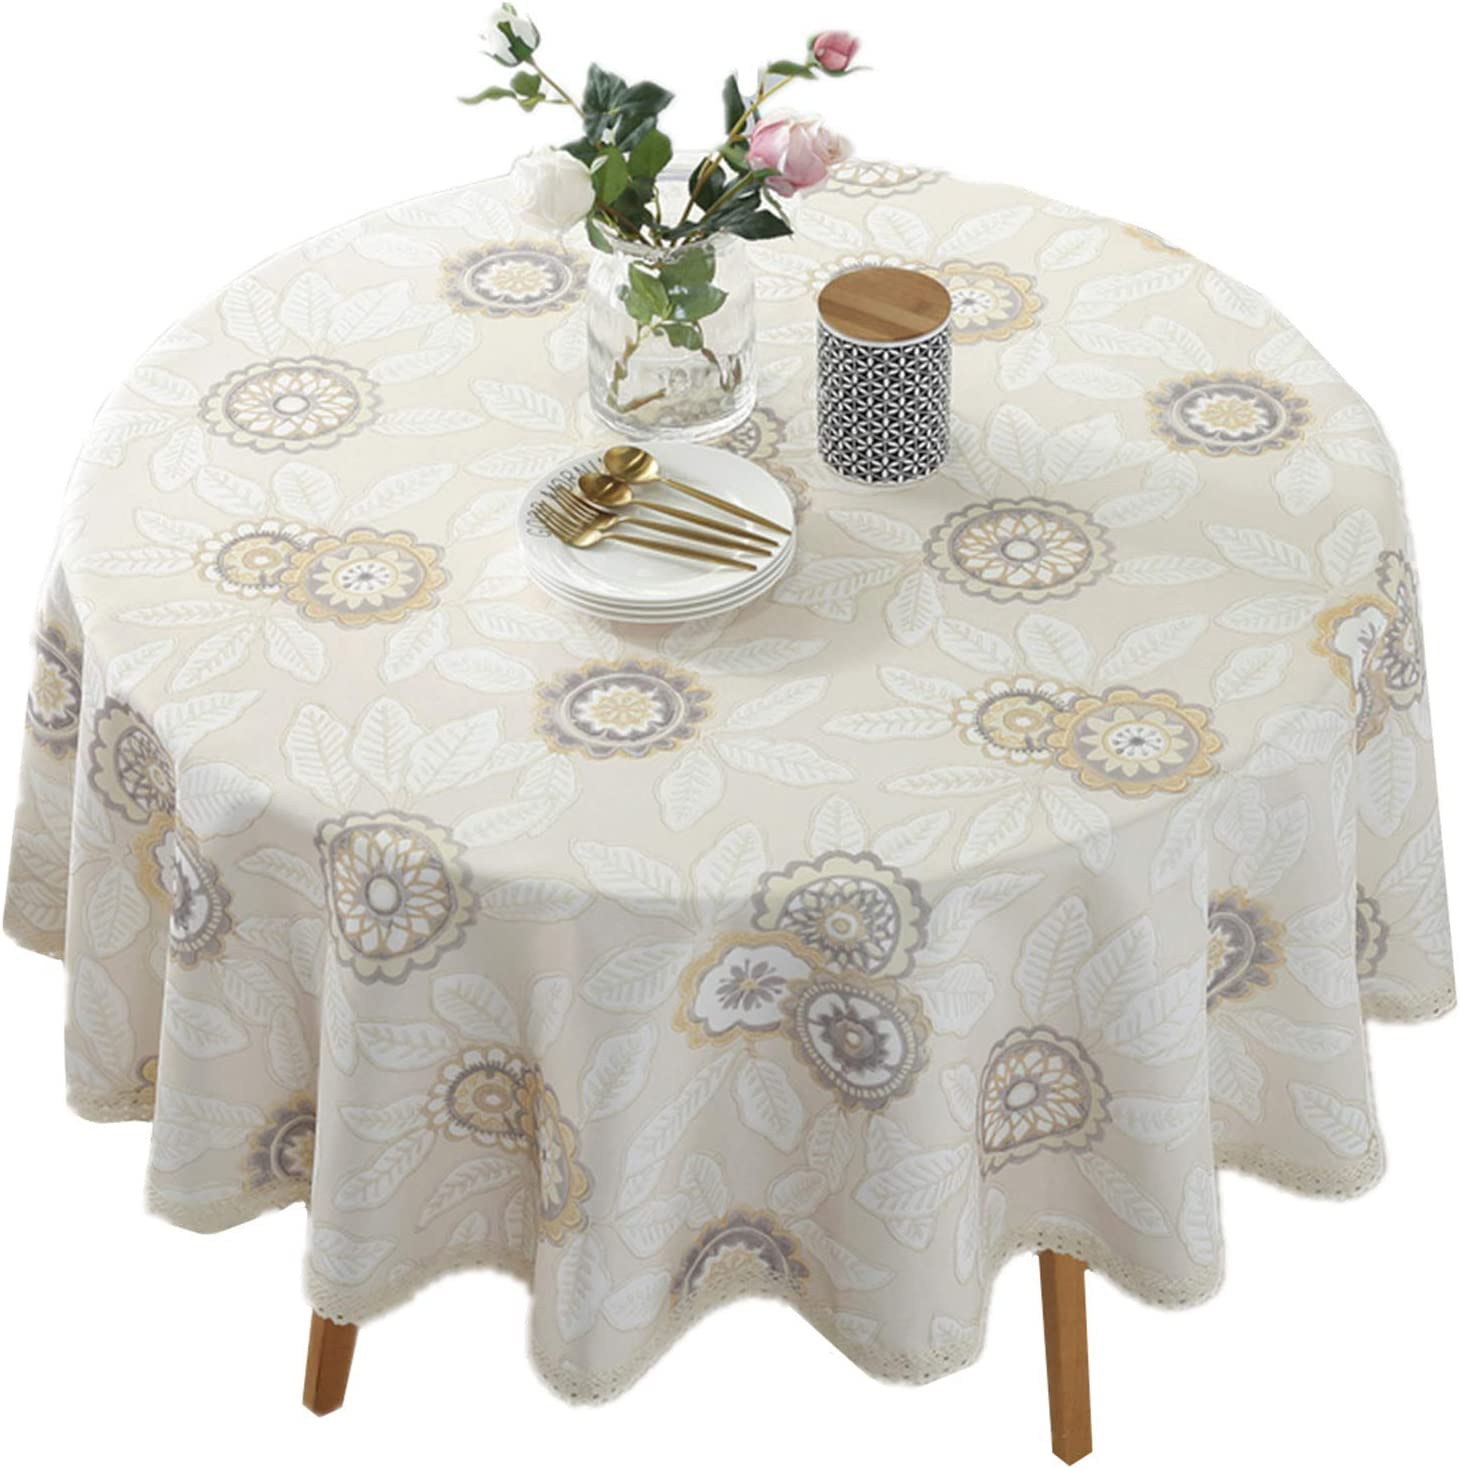 Heavy Duty Elegant Printed Tablecloth   Spillproof Fabric Lace Table Cloth    Round Table Cover for Dining Room Kitchen Home Decor  9